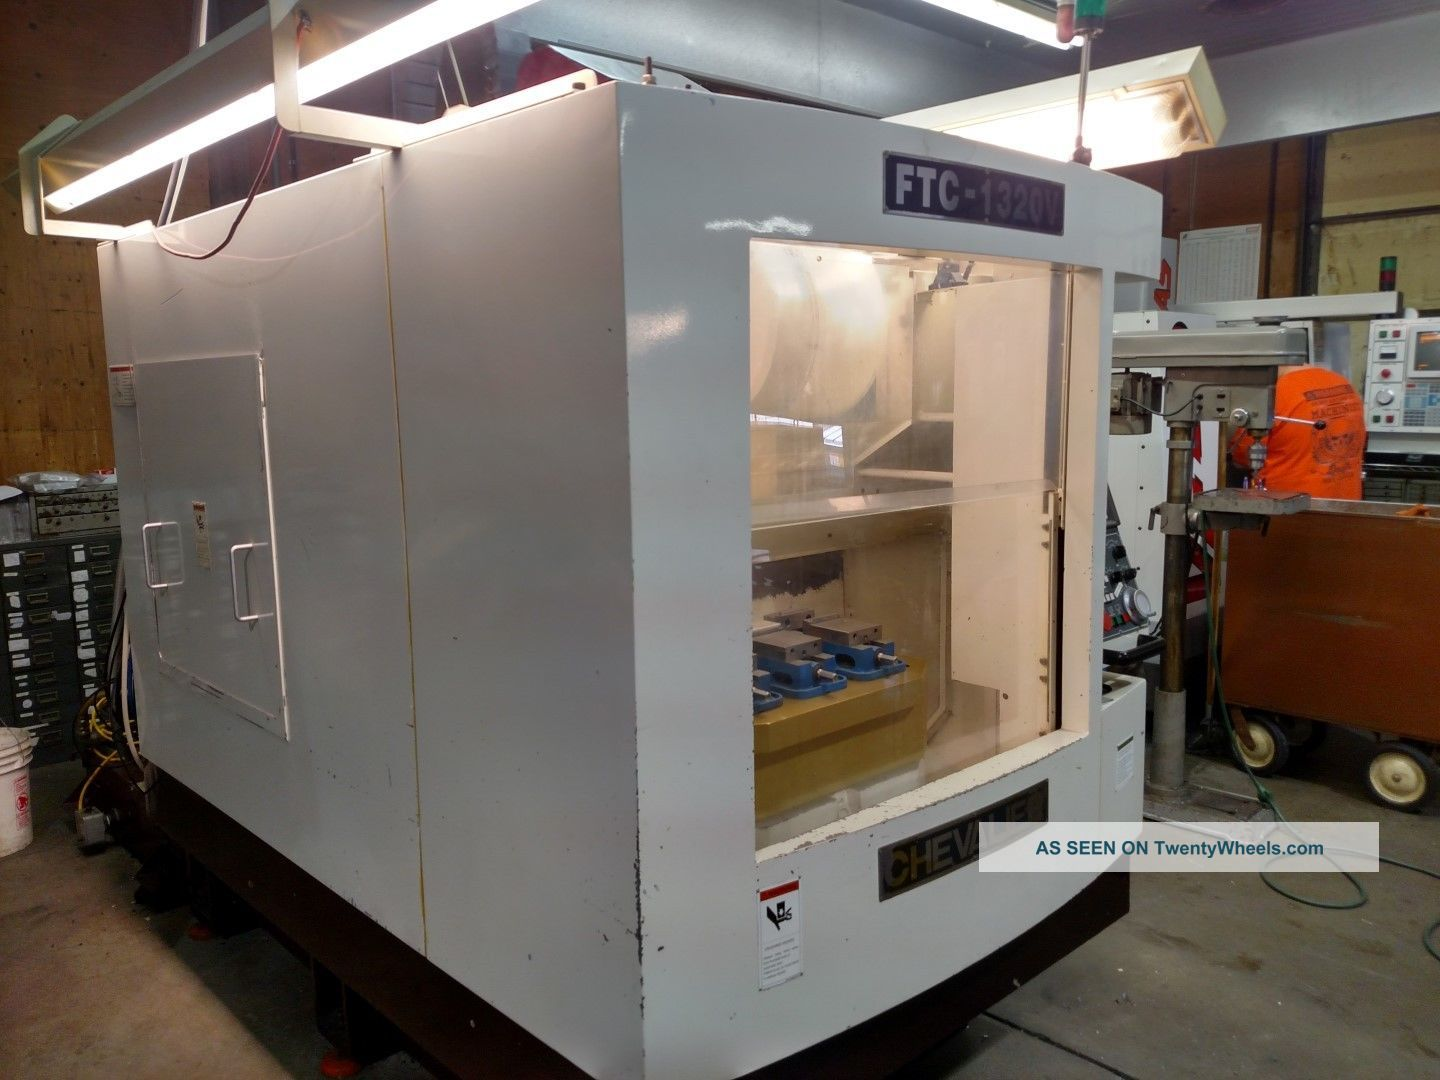 2002 Chevalier Ftc - 1320v Cnc Rotating Drill And Tap Center Veritcal Mill Milling Machines photo